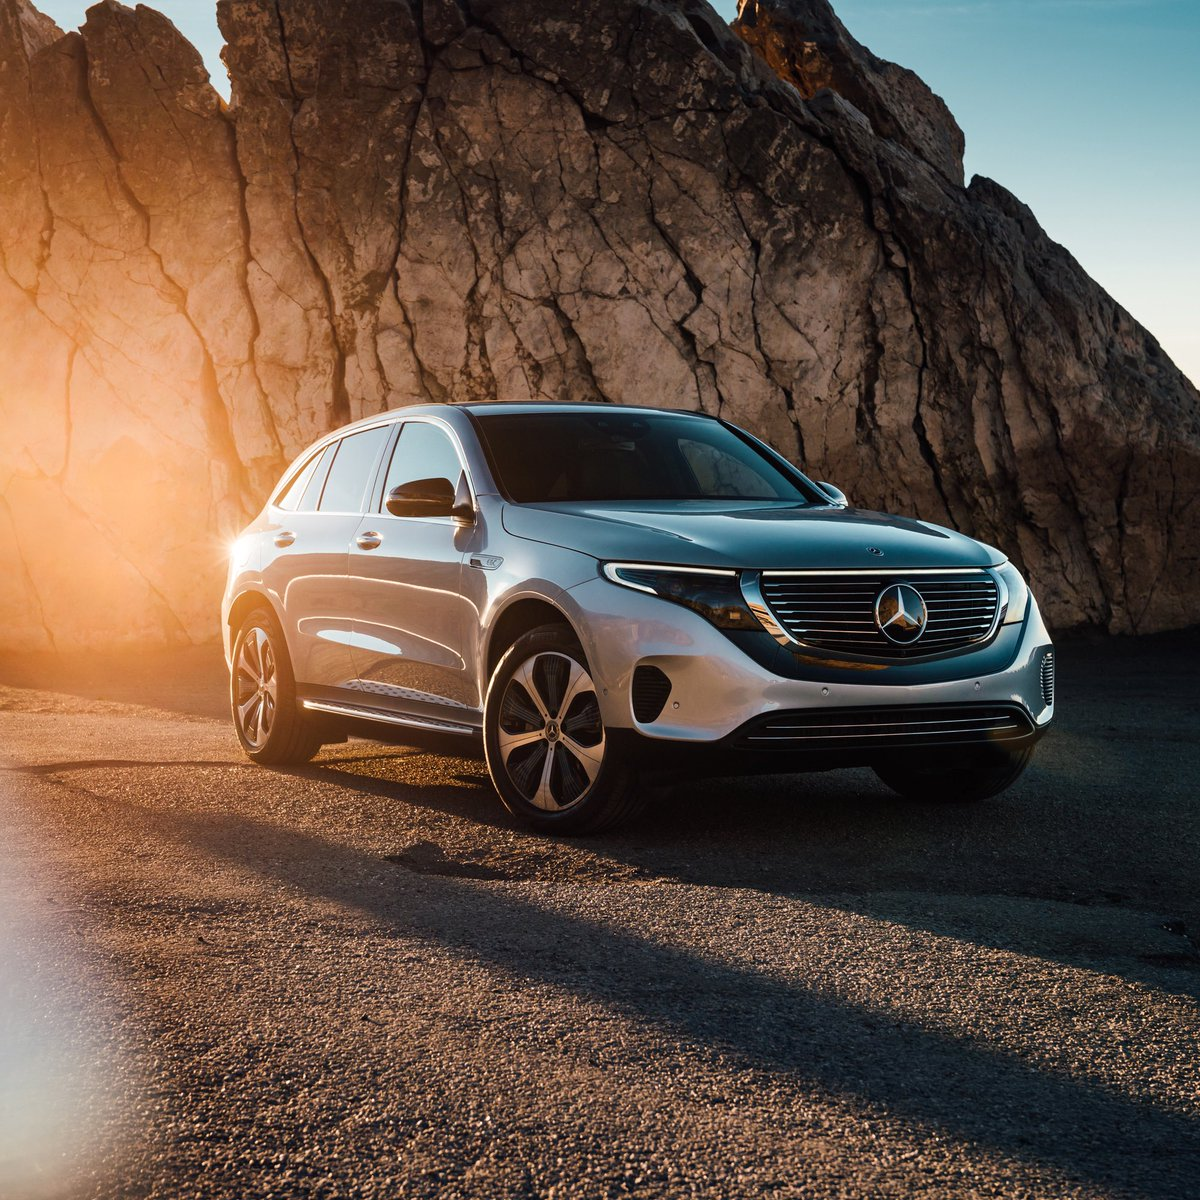 The future is here and it's excitingly dynamic! 🤩 #inspiredbyEQ #switchtoEQ #EQC  [Mercedes-Benz EQC 400 4MATIC | Stromverbrauch kombiniert: 22,2 kWh/100 km | CO₂-Emissionen kombiniert: 0 g/km | http://mb4.me/nefz-electric ]